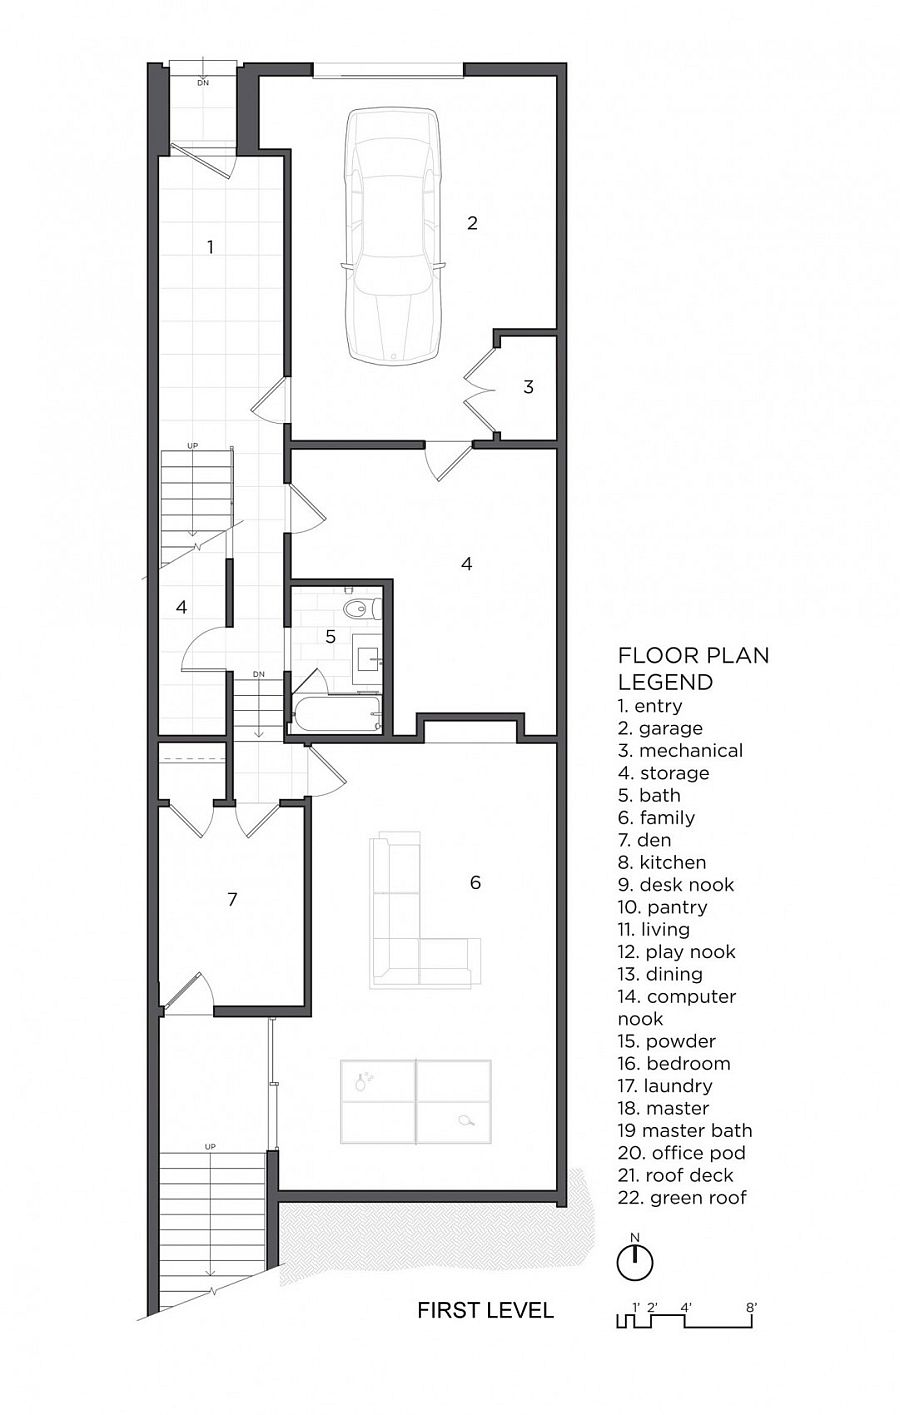 Floor plan of the first level of Fitty wun